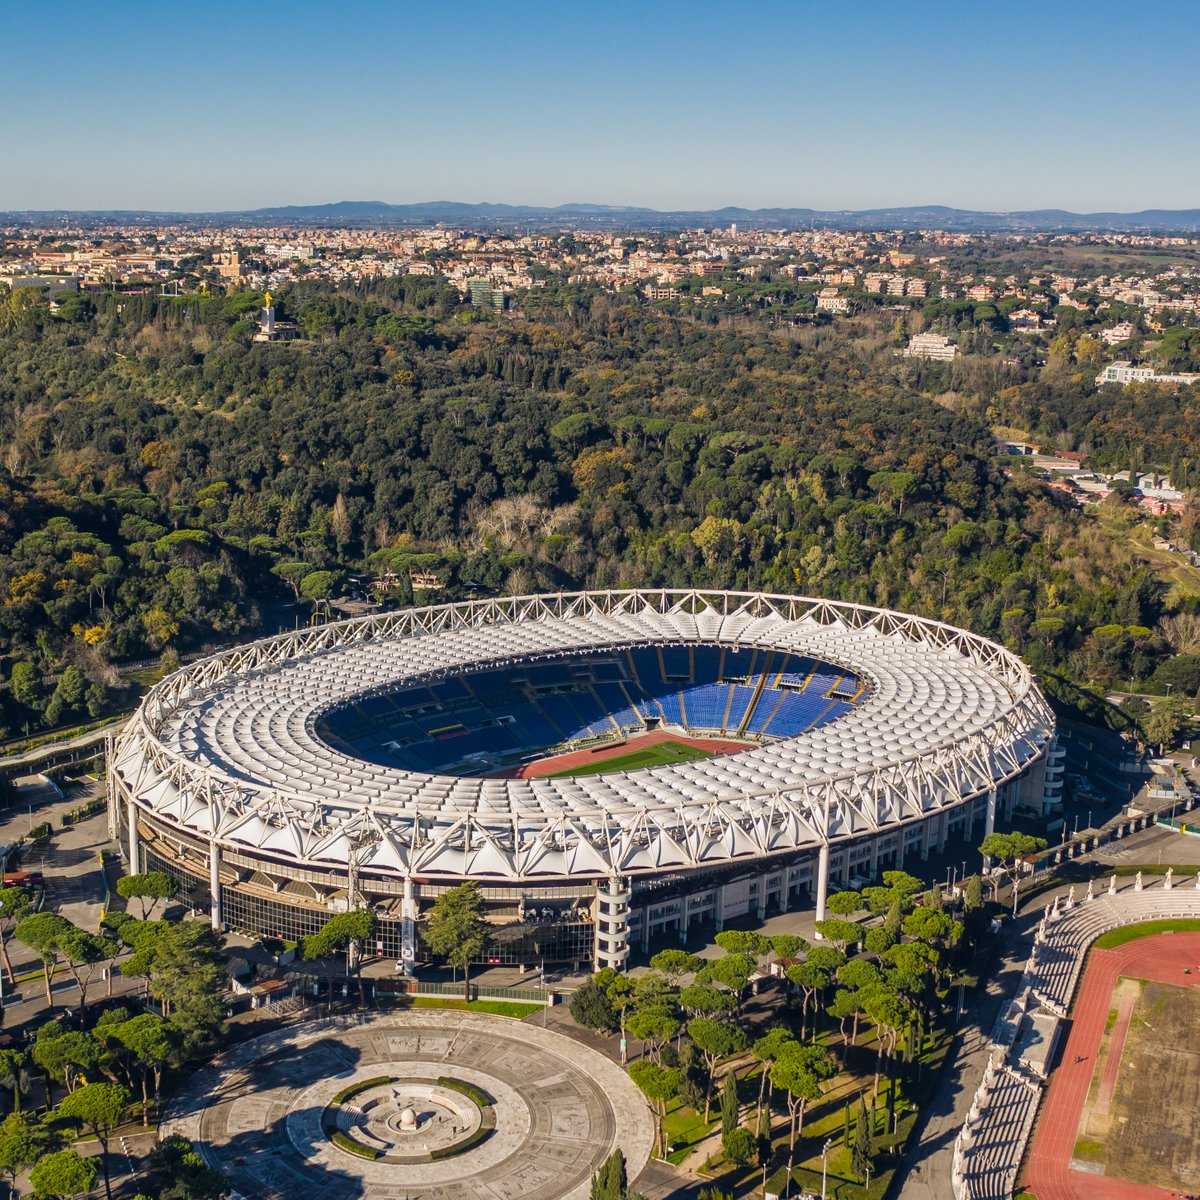 🏟️ Stadio Olimpico, Rome 😍  🌍 Where in the world are you watching the Champions League action?  #UCL https://t.co/fOsOalcJoJ